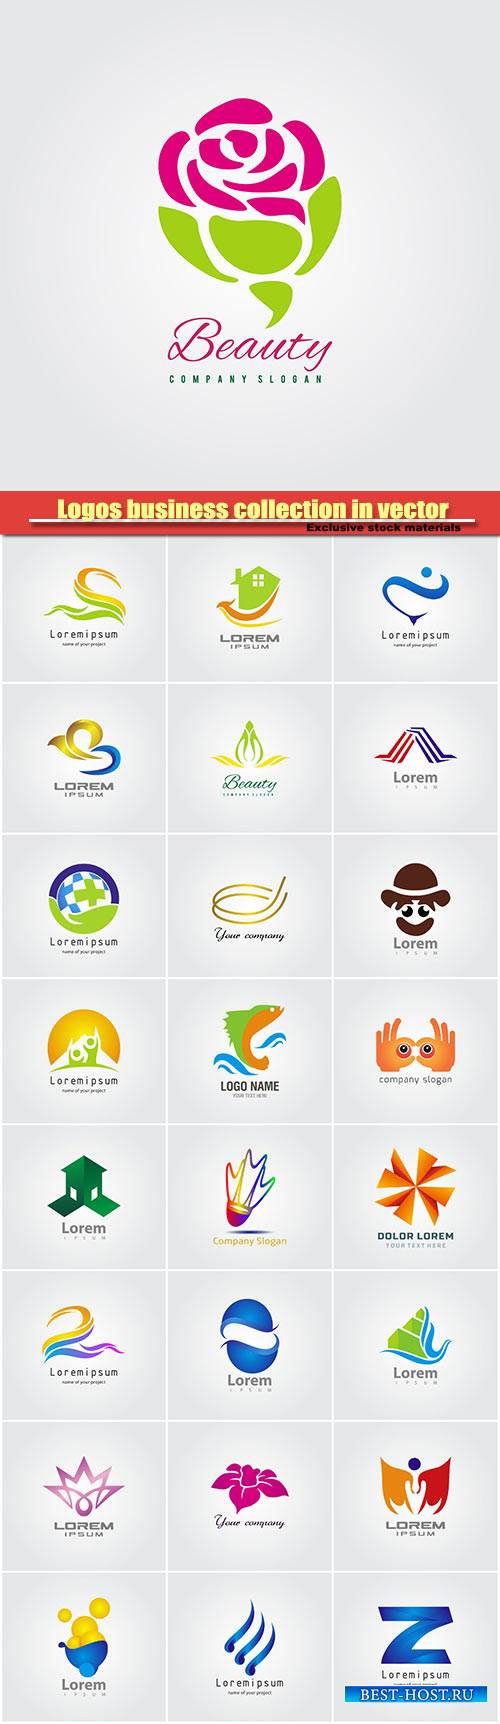 Logos business collection in vector #26